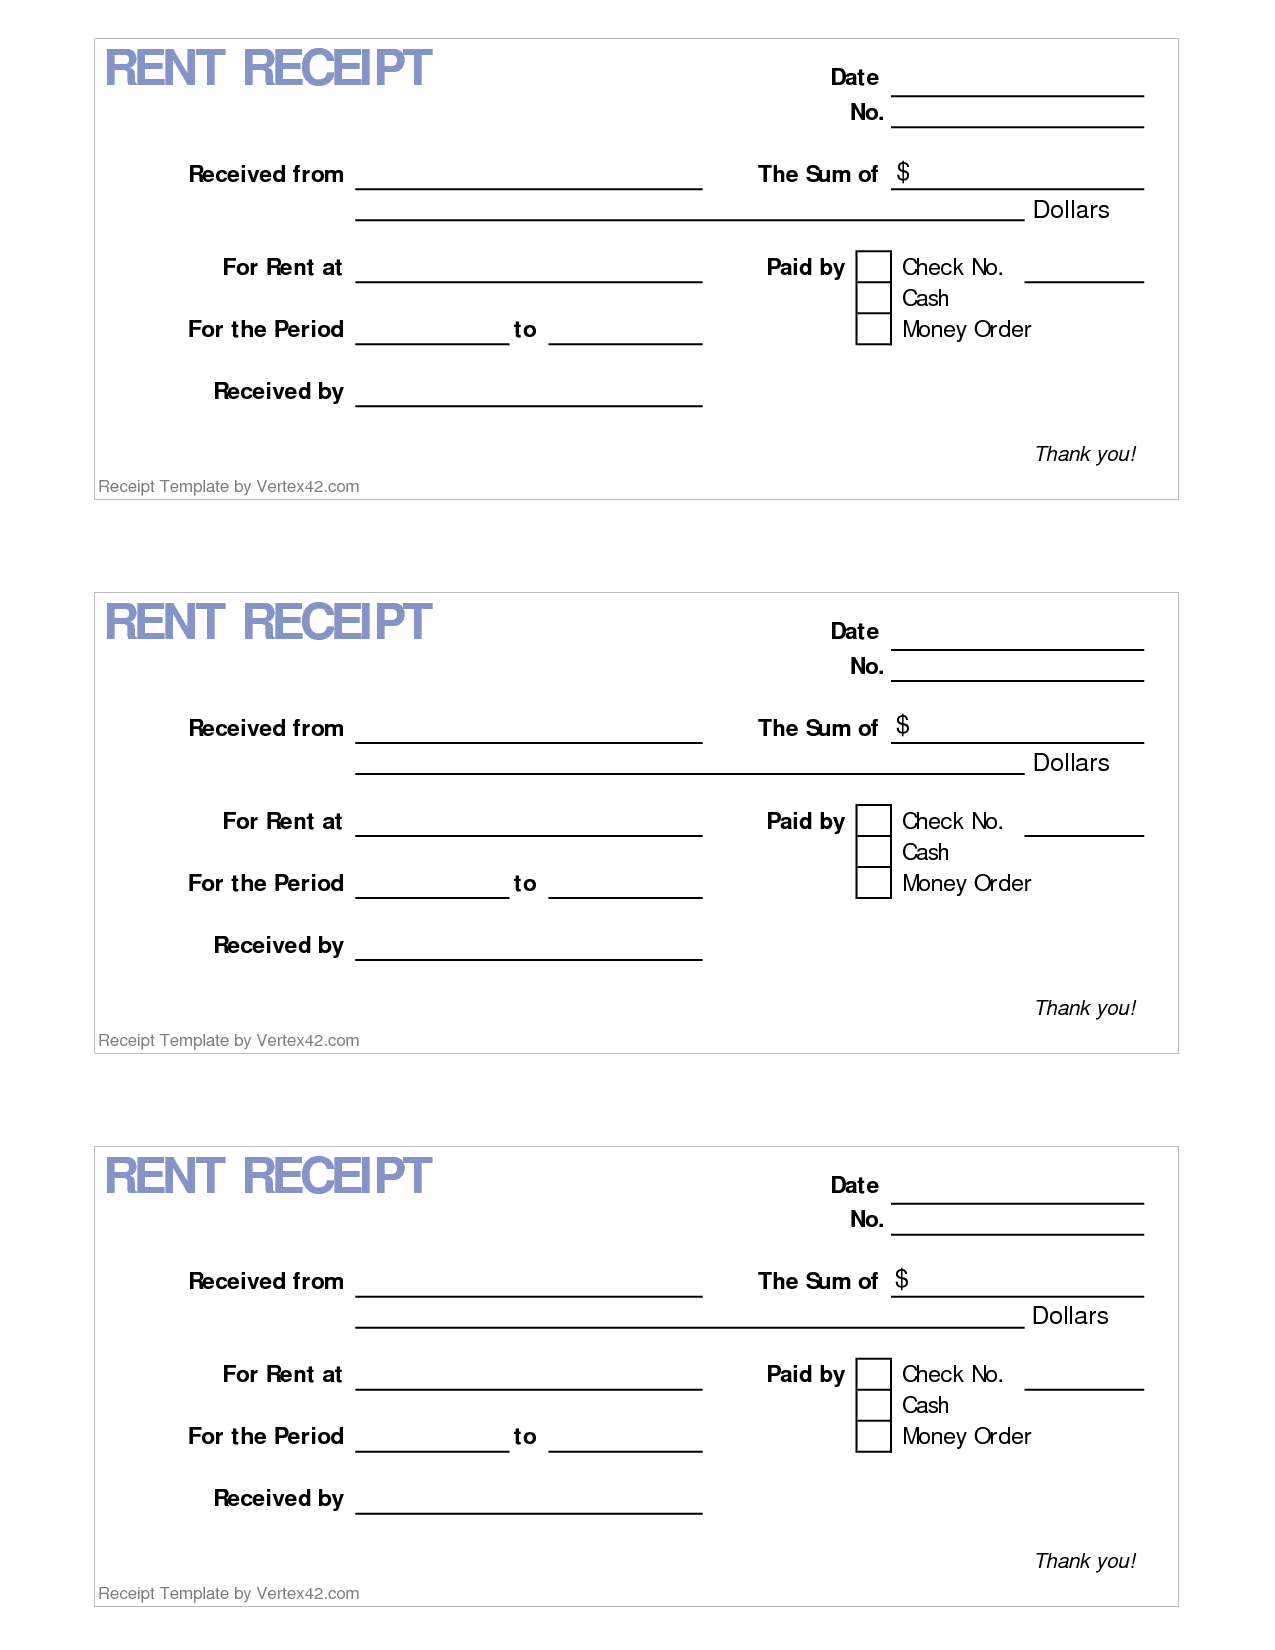 free rent receipt template - 6 best images of printable rent receipt template free